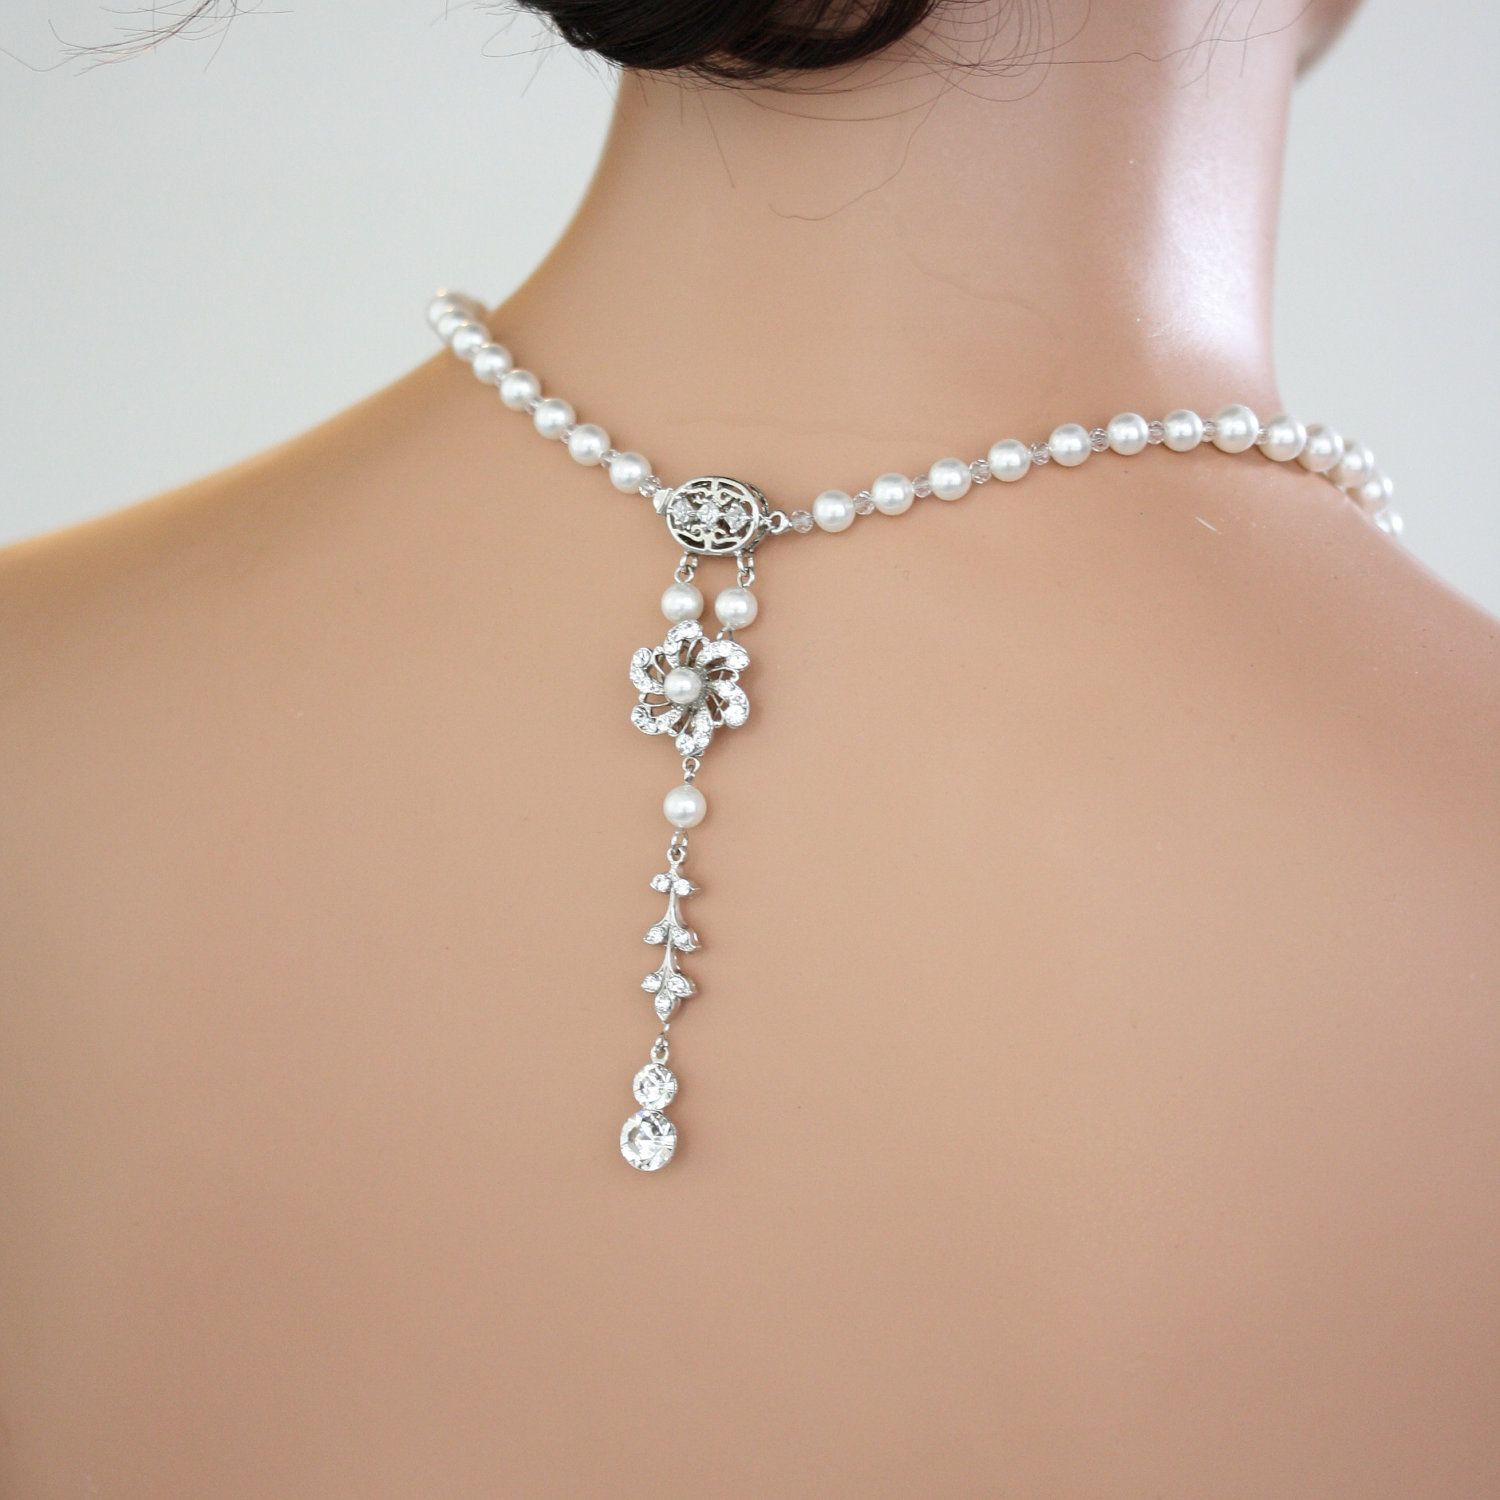 Jewelry the best gps pinterest wedding jewelry for Back necklace for wedding dress